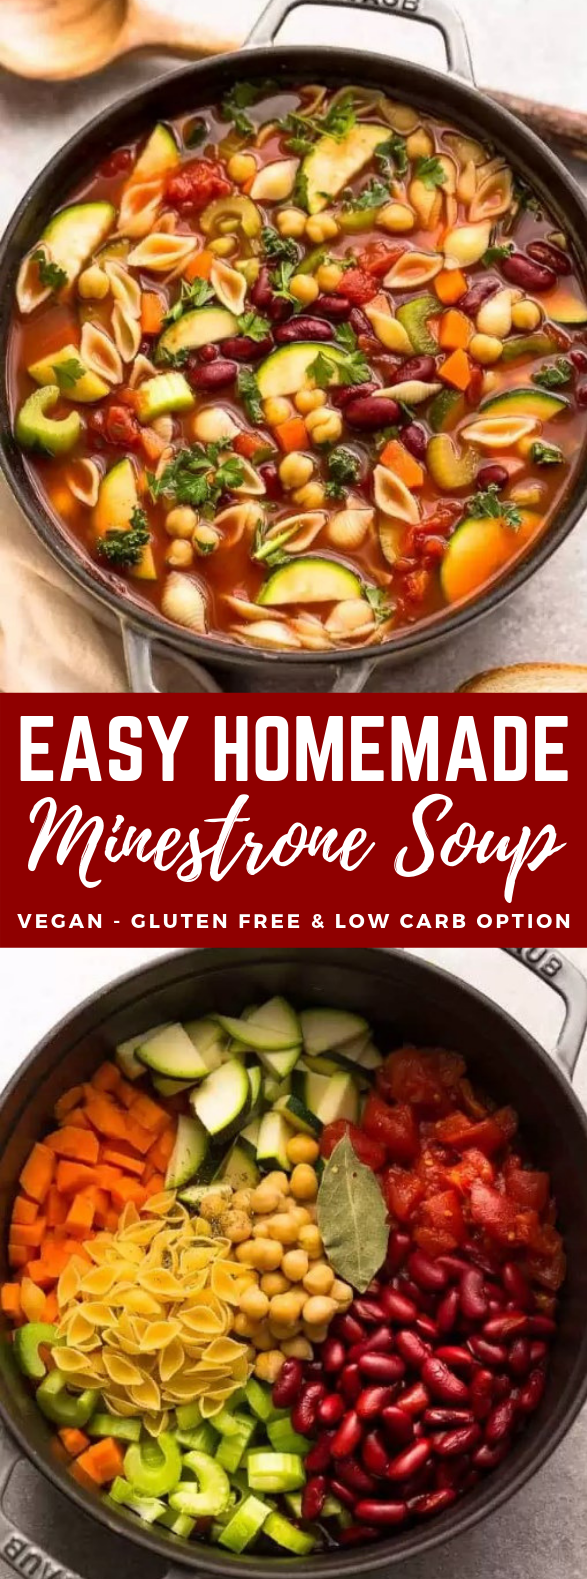 EASY MINESTRONE SOUP #vegetarian #paleo